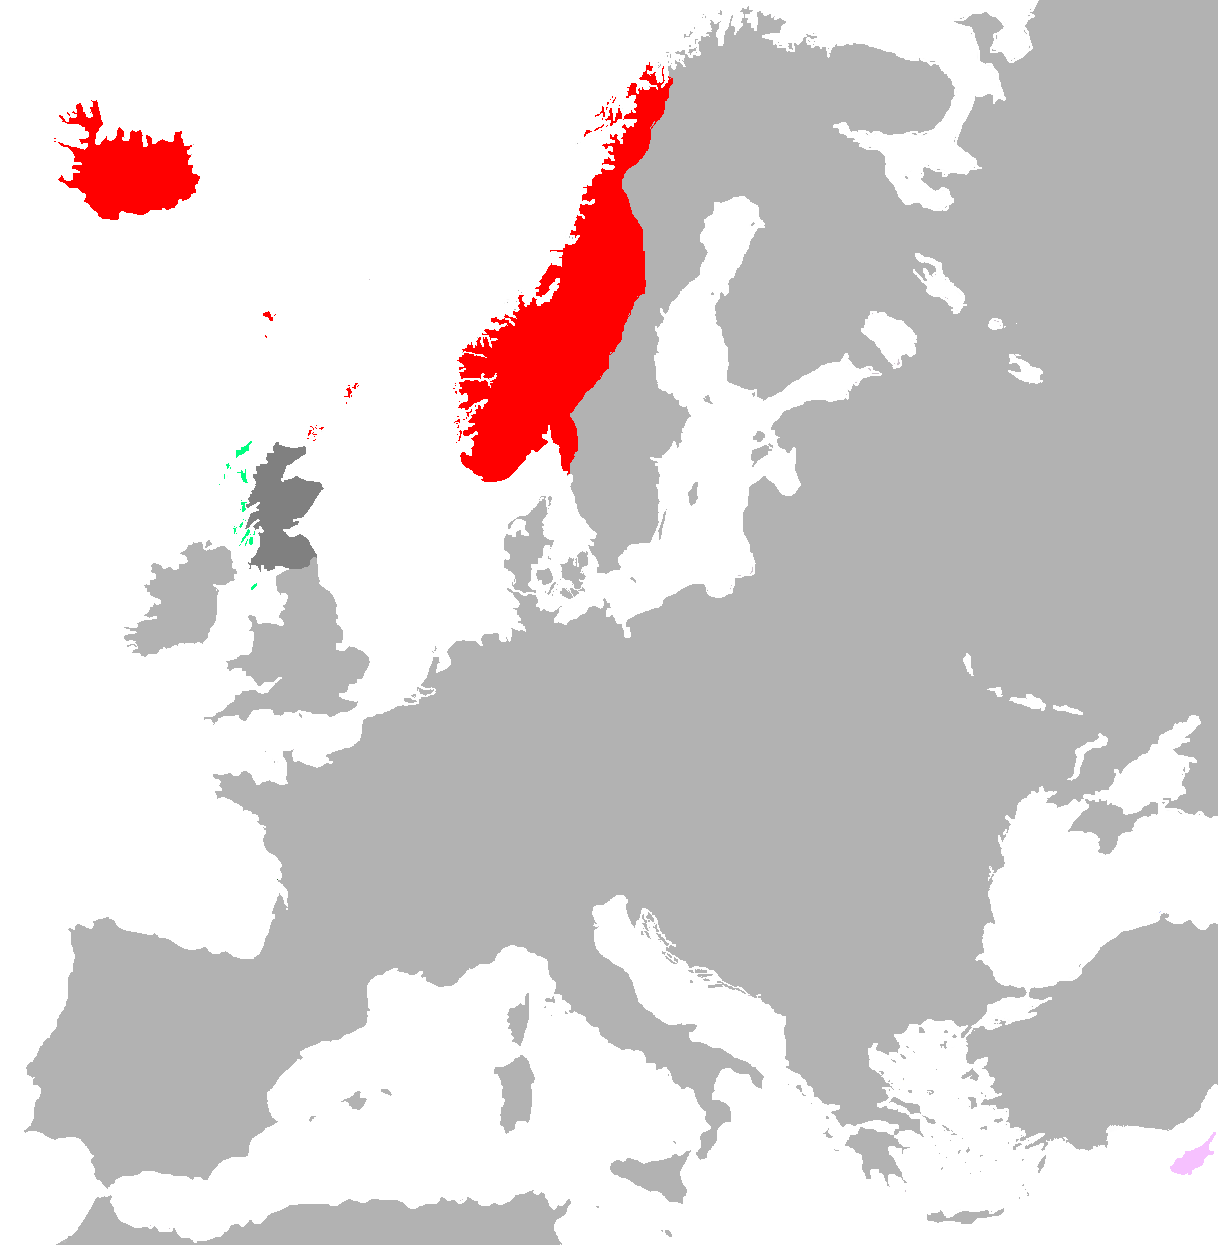 File:Kingdom of Norway.png.